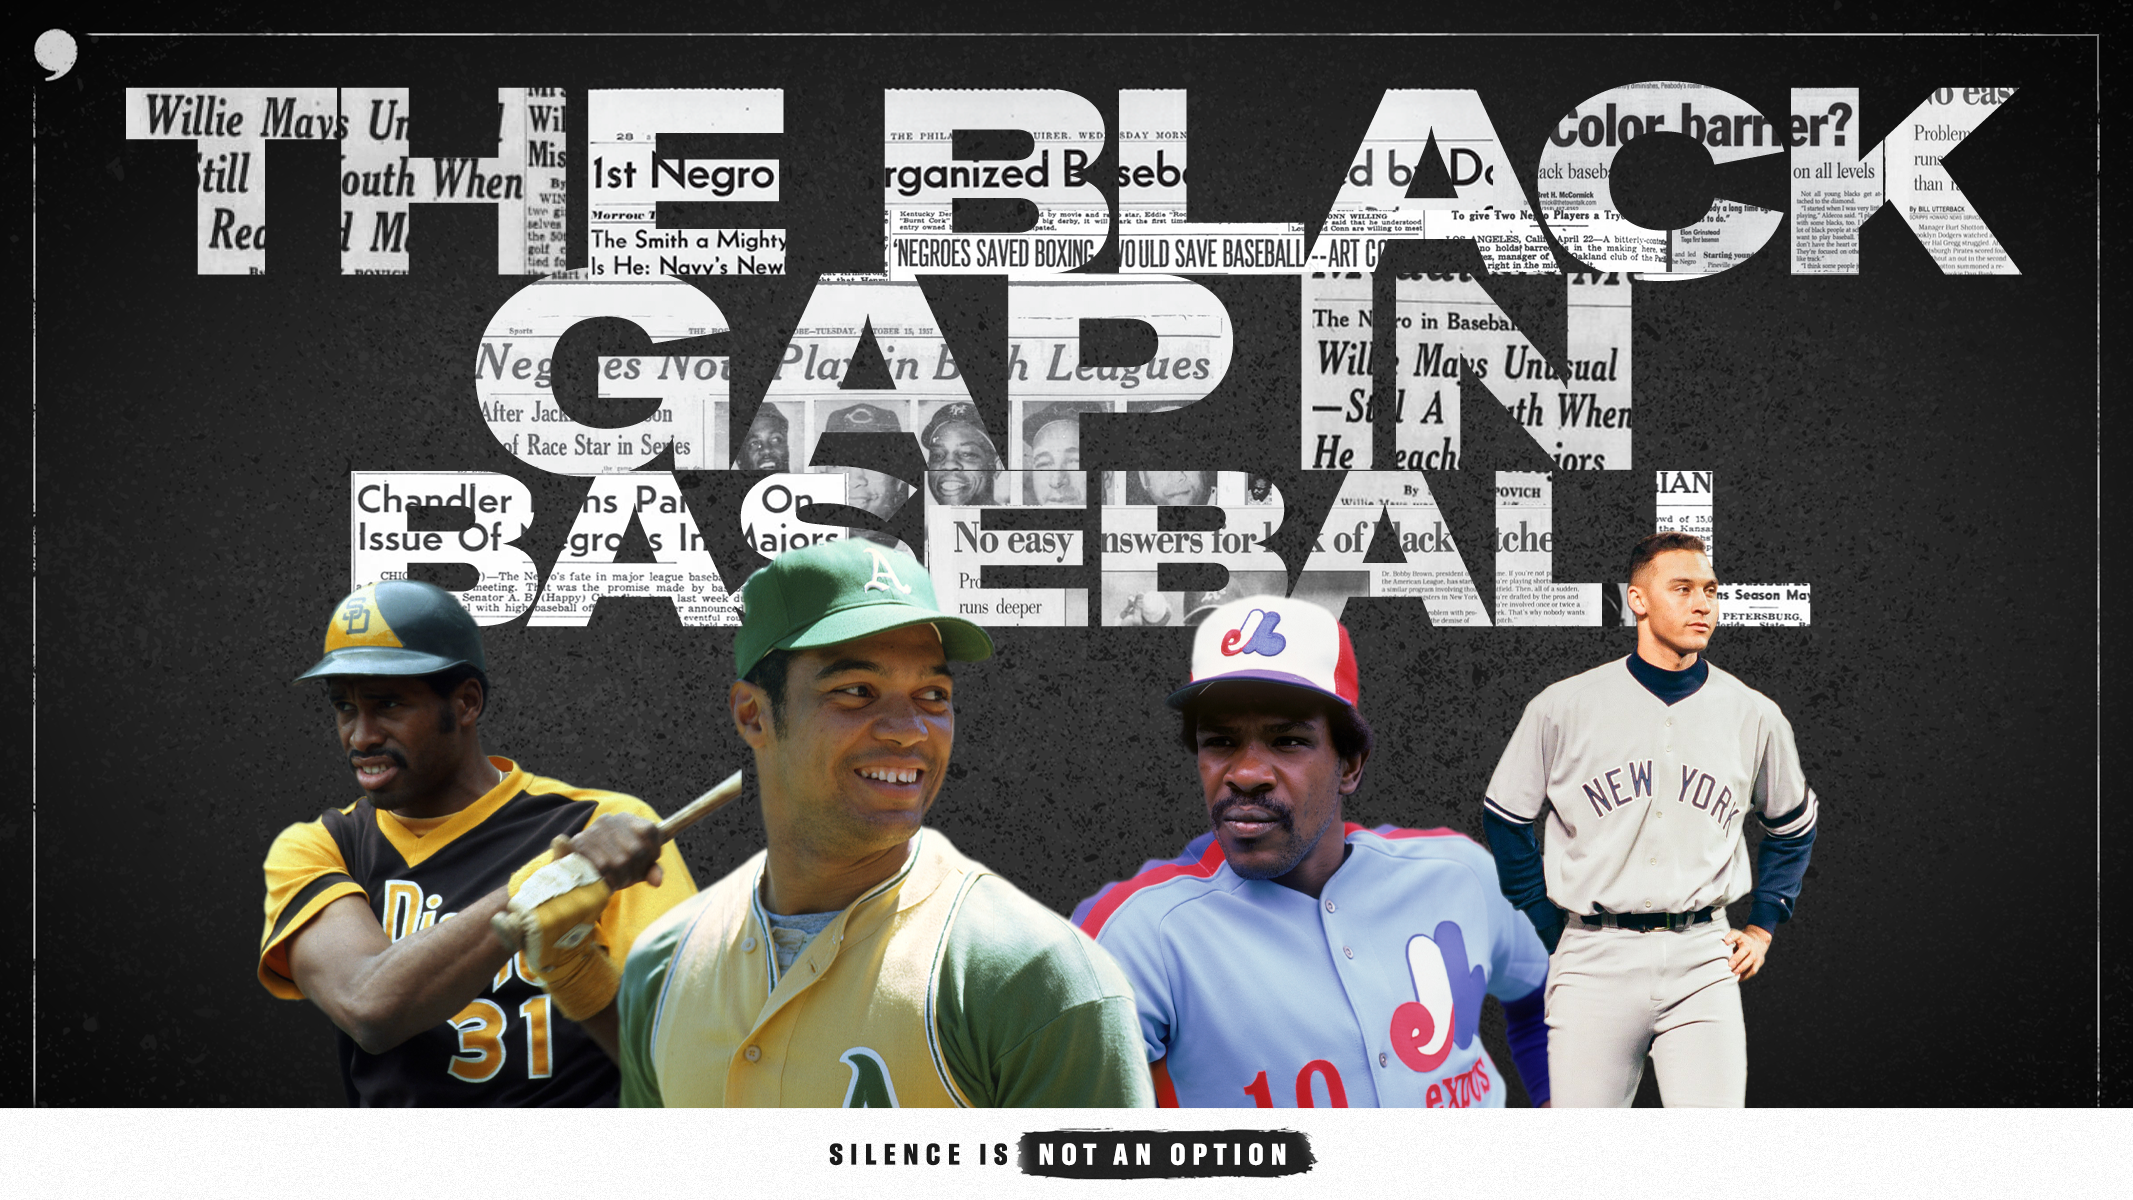 MLB Players Share What It's Like to Be a Black Baseball Player - cover